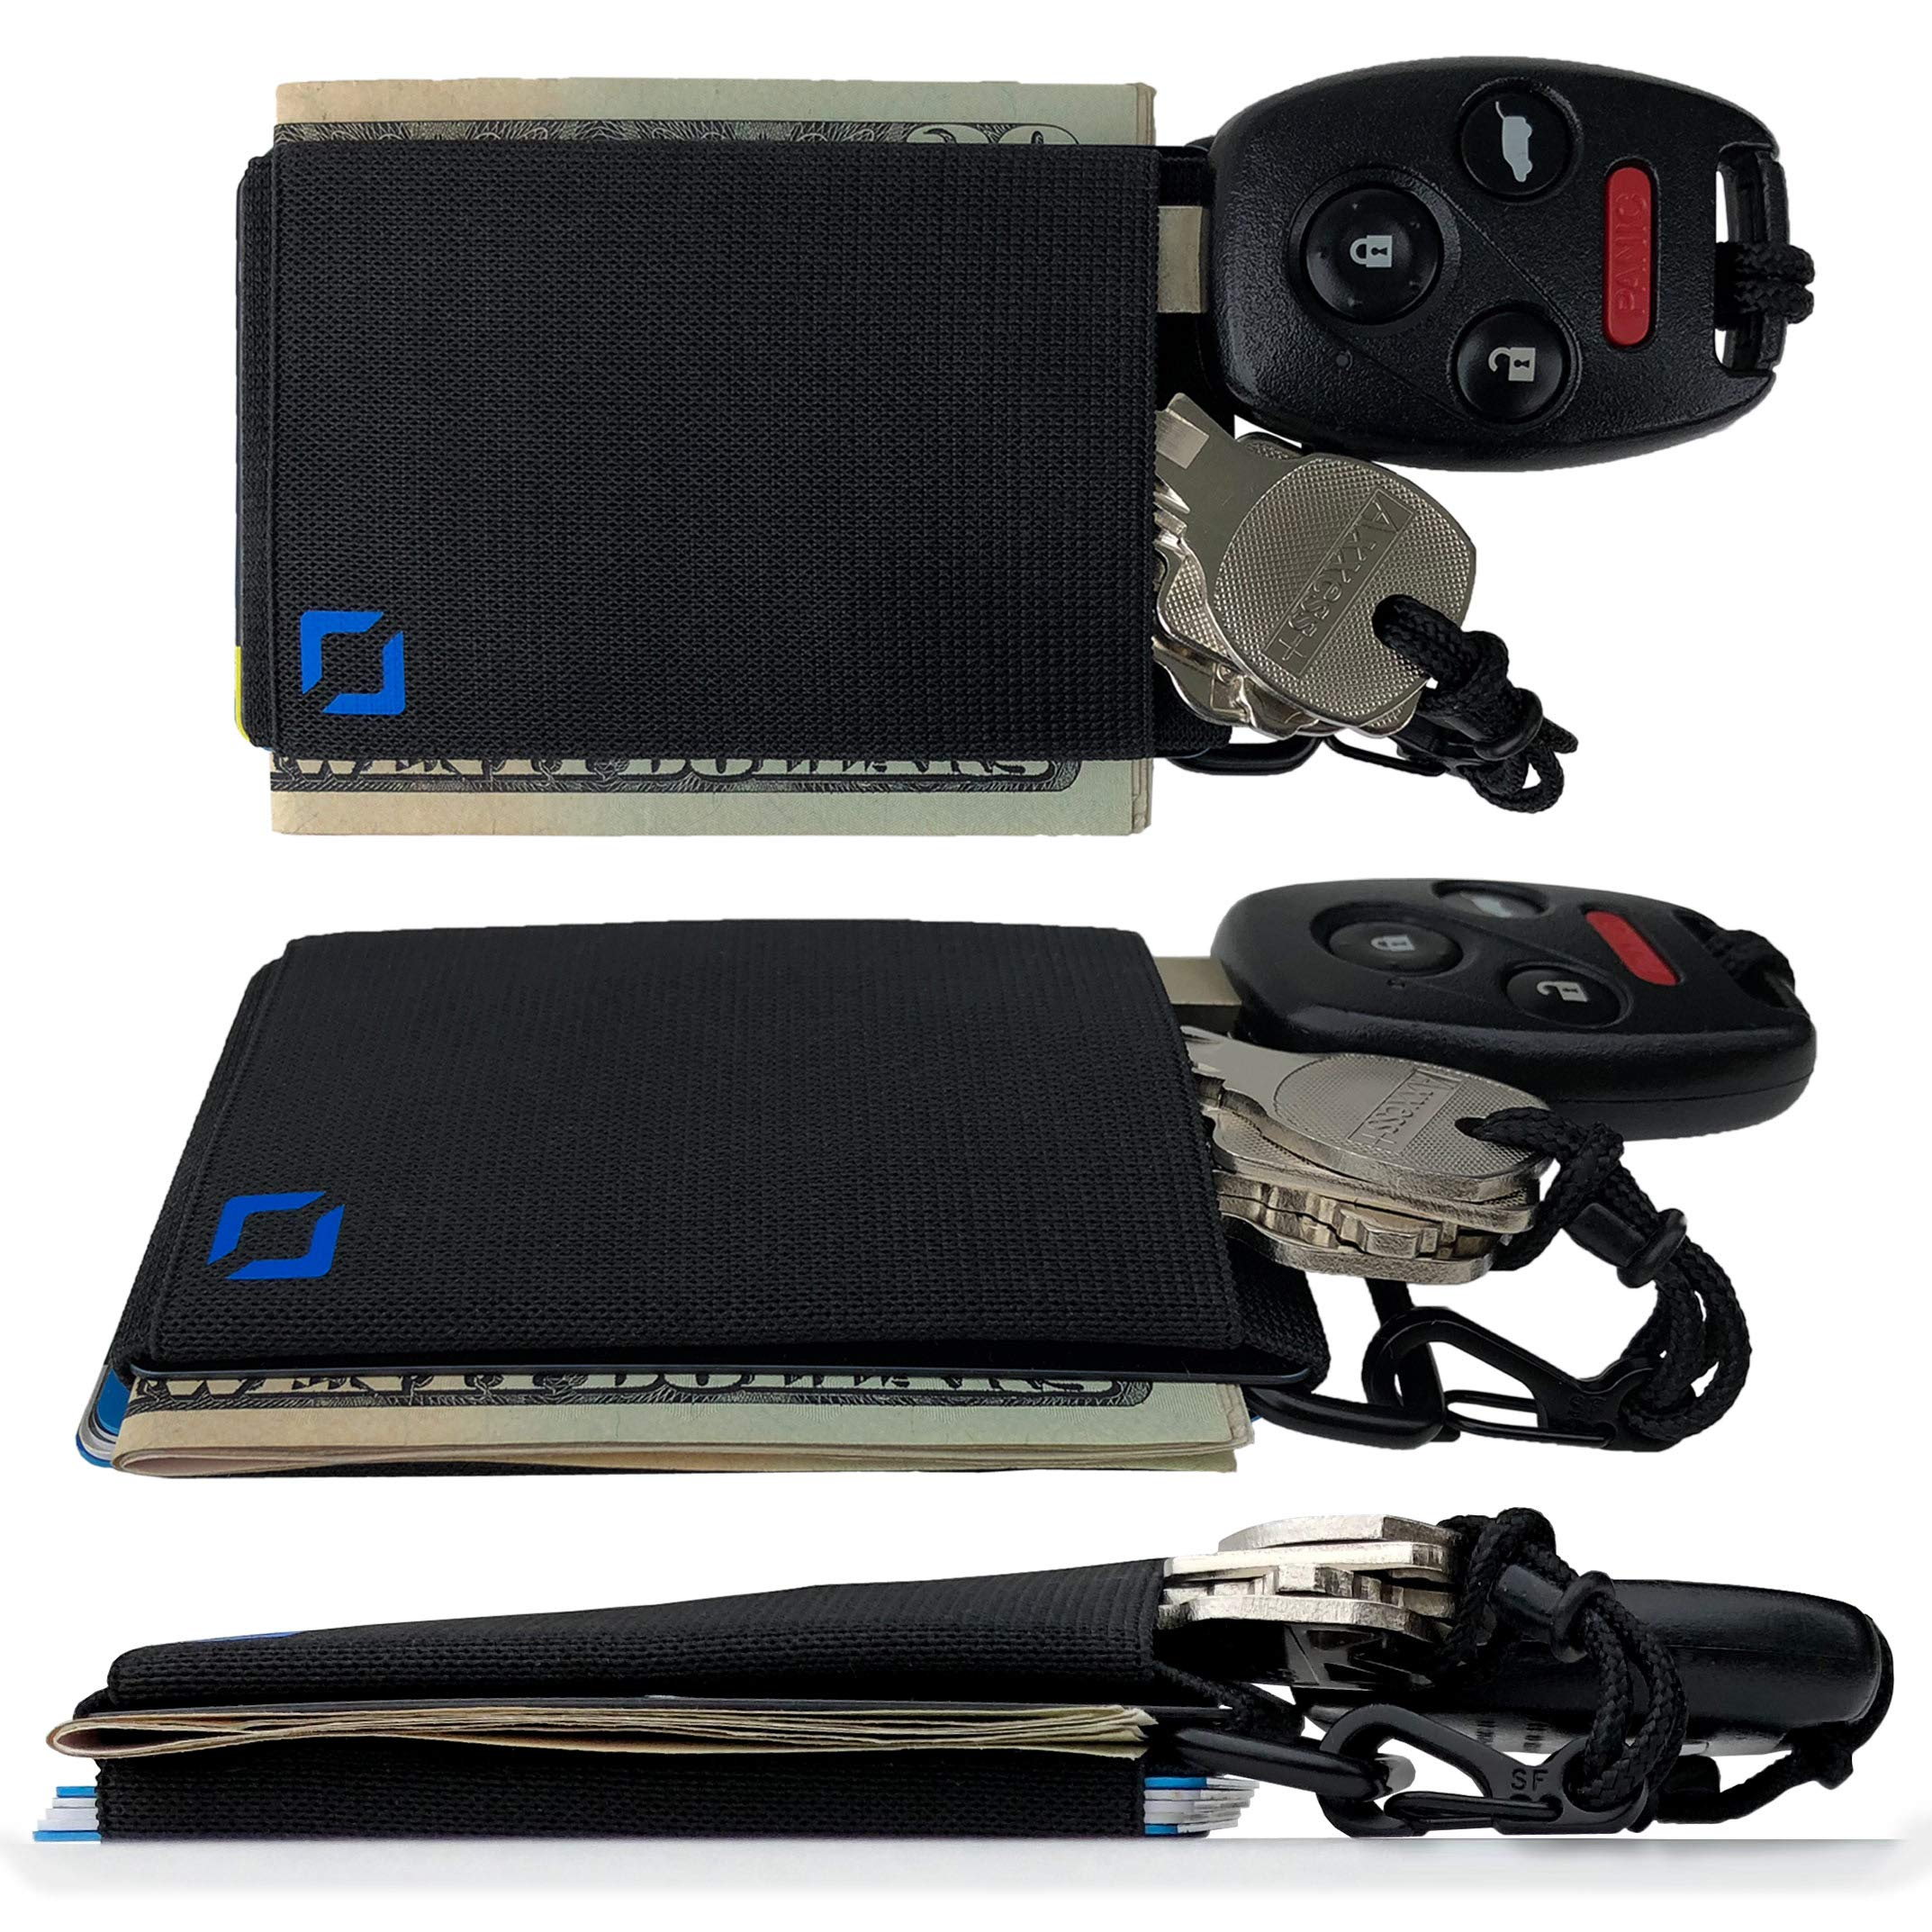 Anti-Wallet: Minimalist Front Pocket Everyday Carry for Credit Cards and Cash (Blue on Black + Key Hitch)